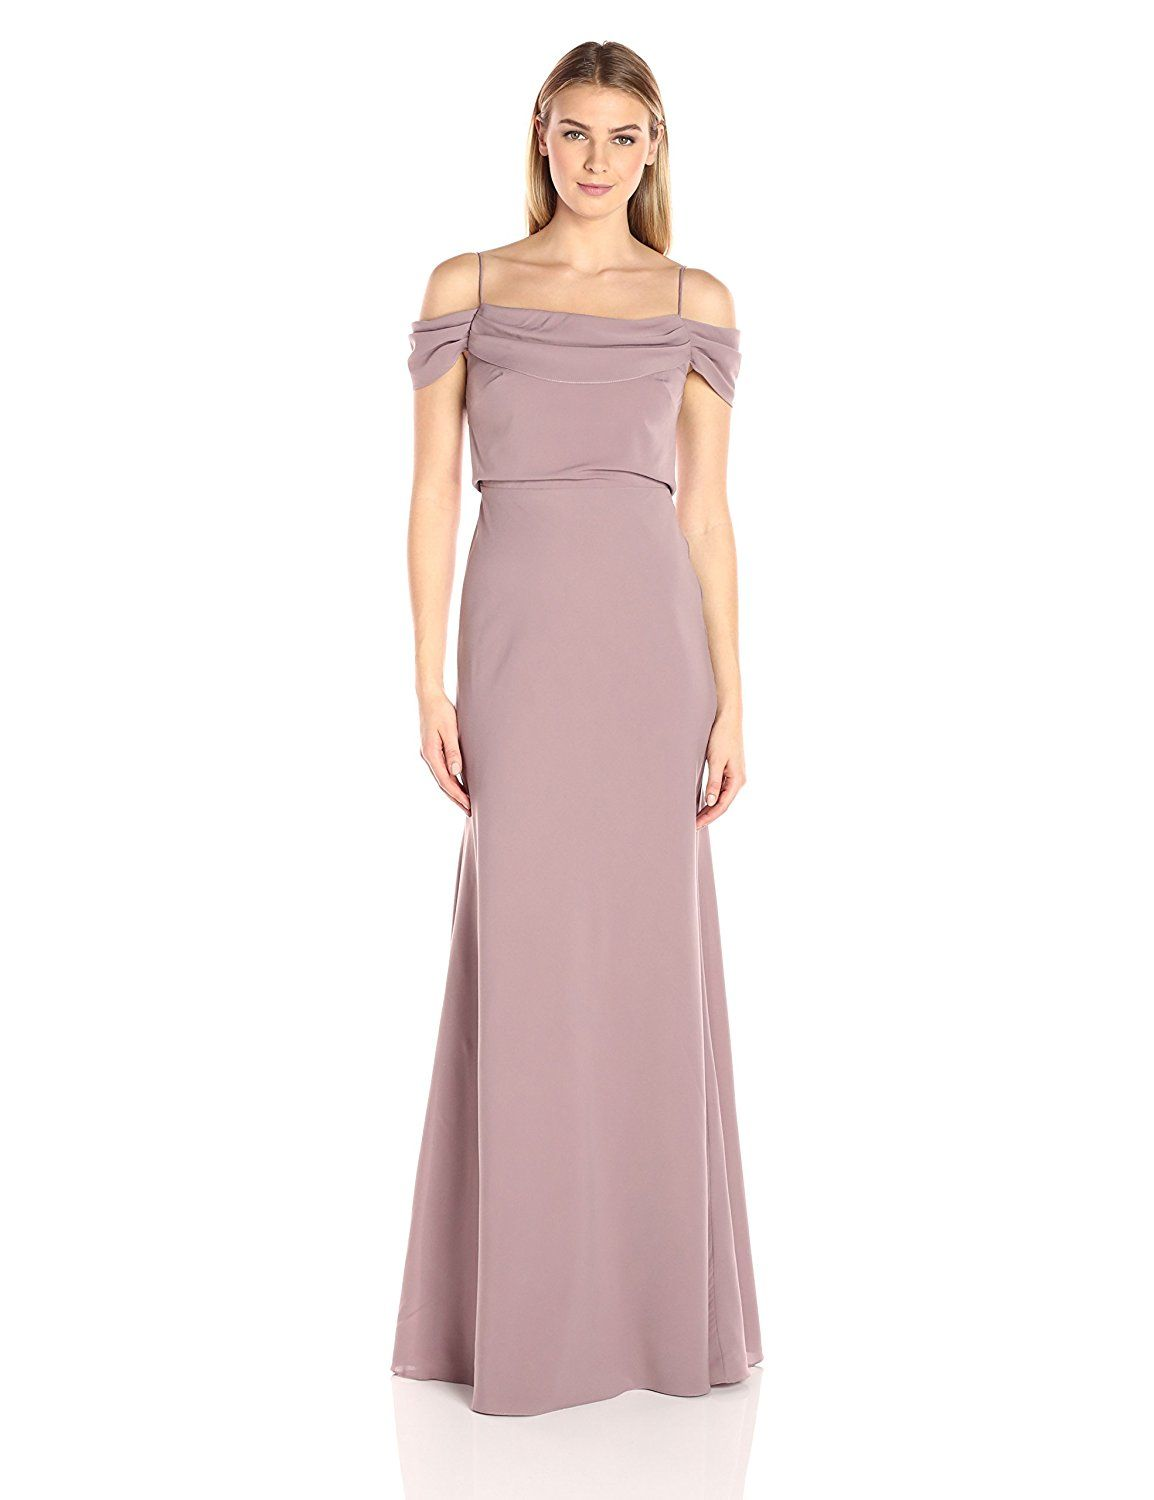 4f9707af9dd Jenny Yoo Women s Sabine Draped Off The Shoulder Crepe Gown at Amazon  Women s Clothing store